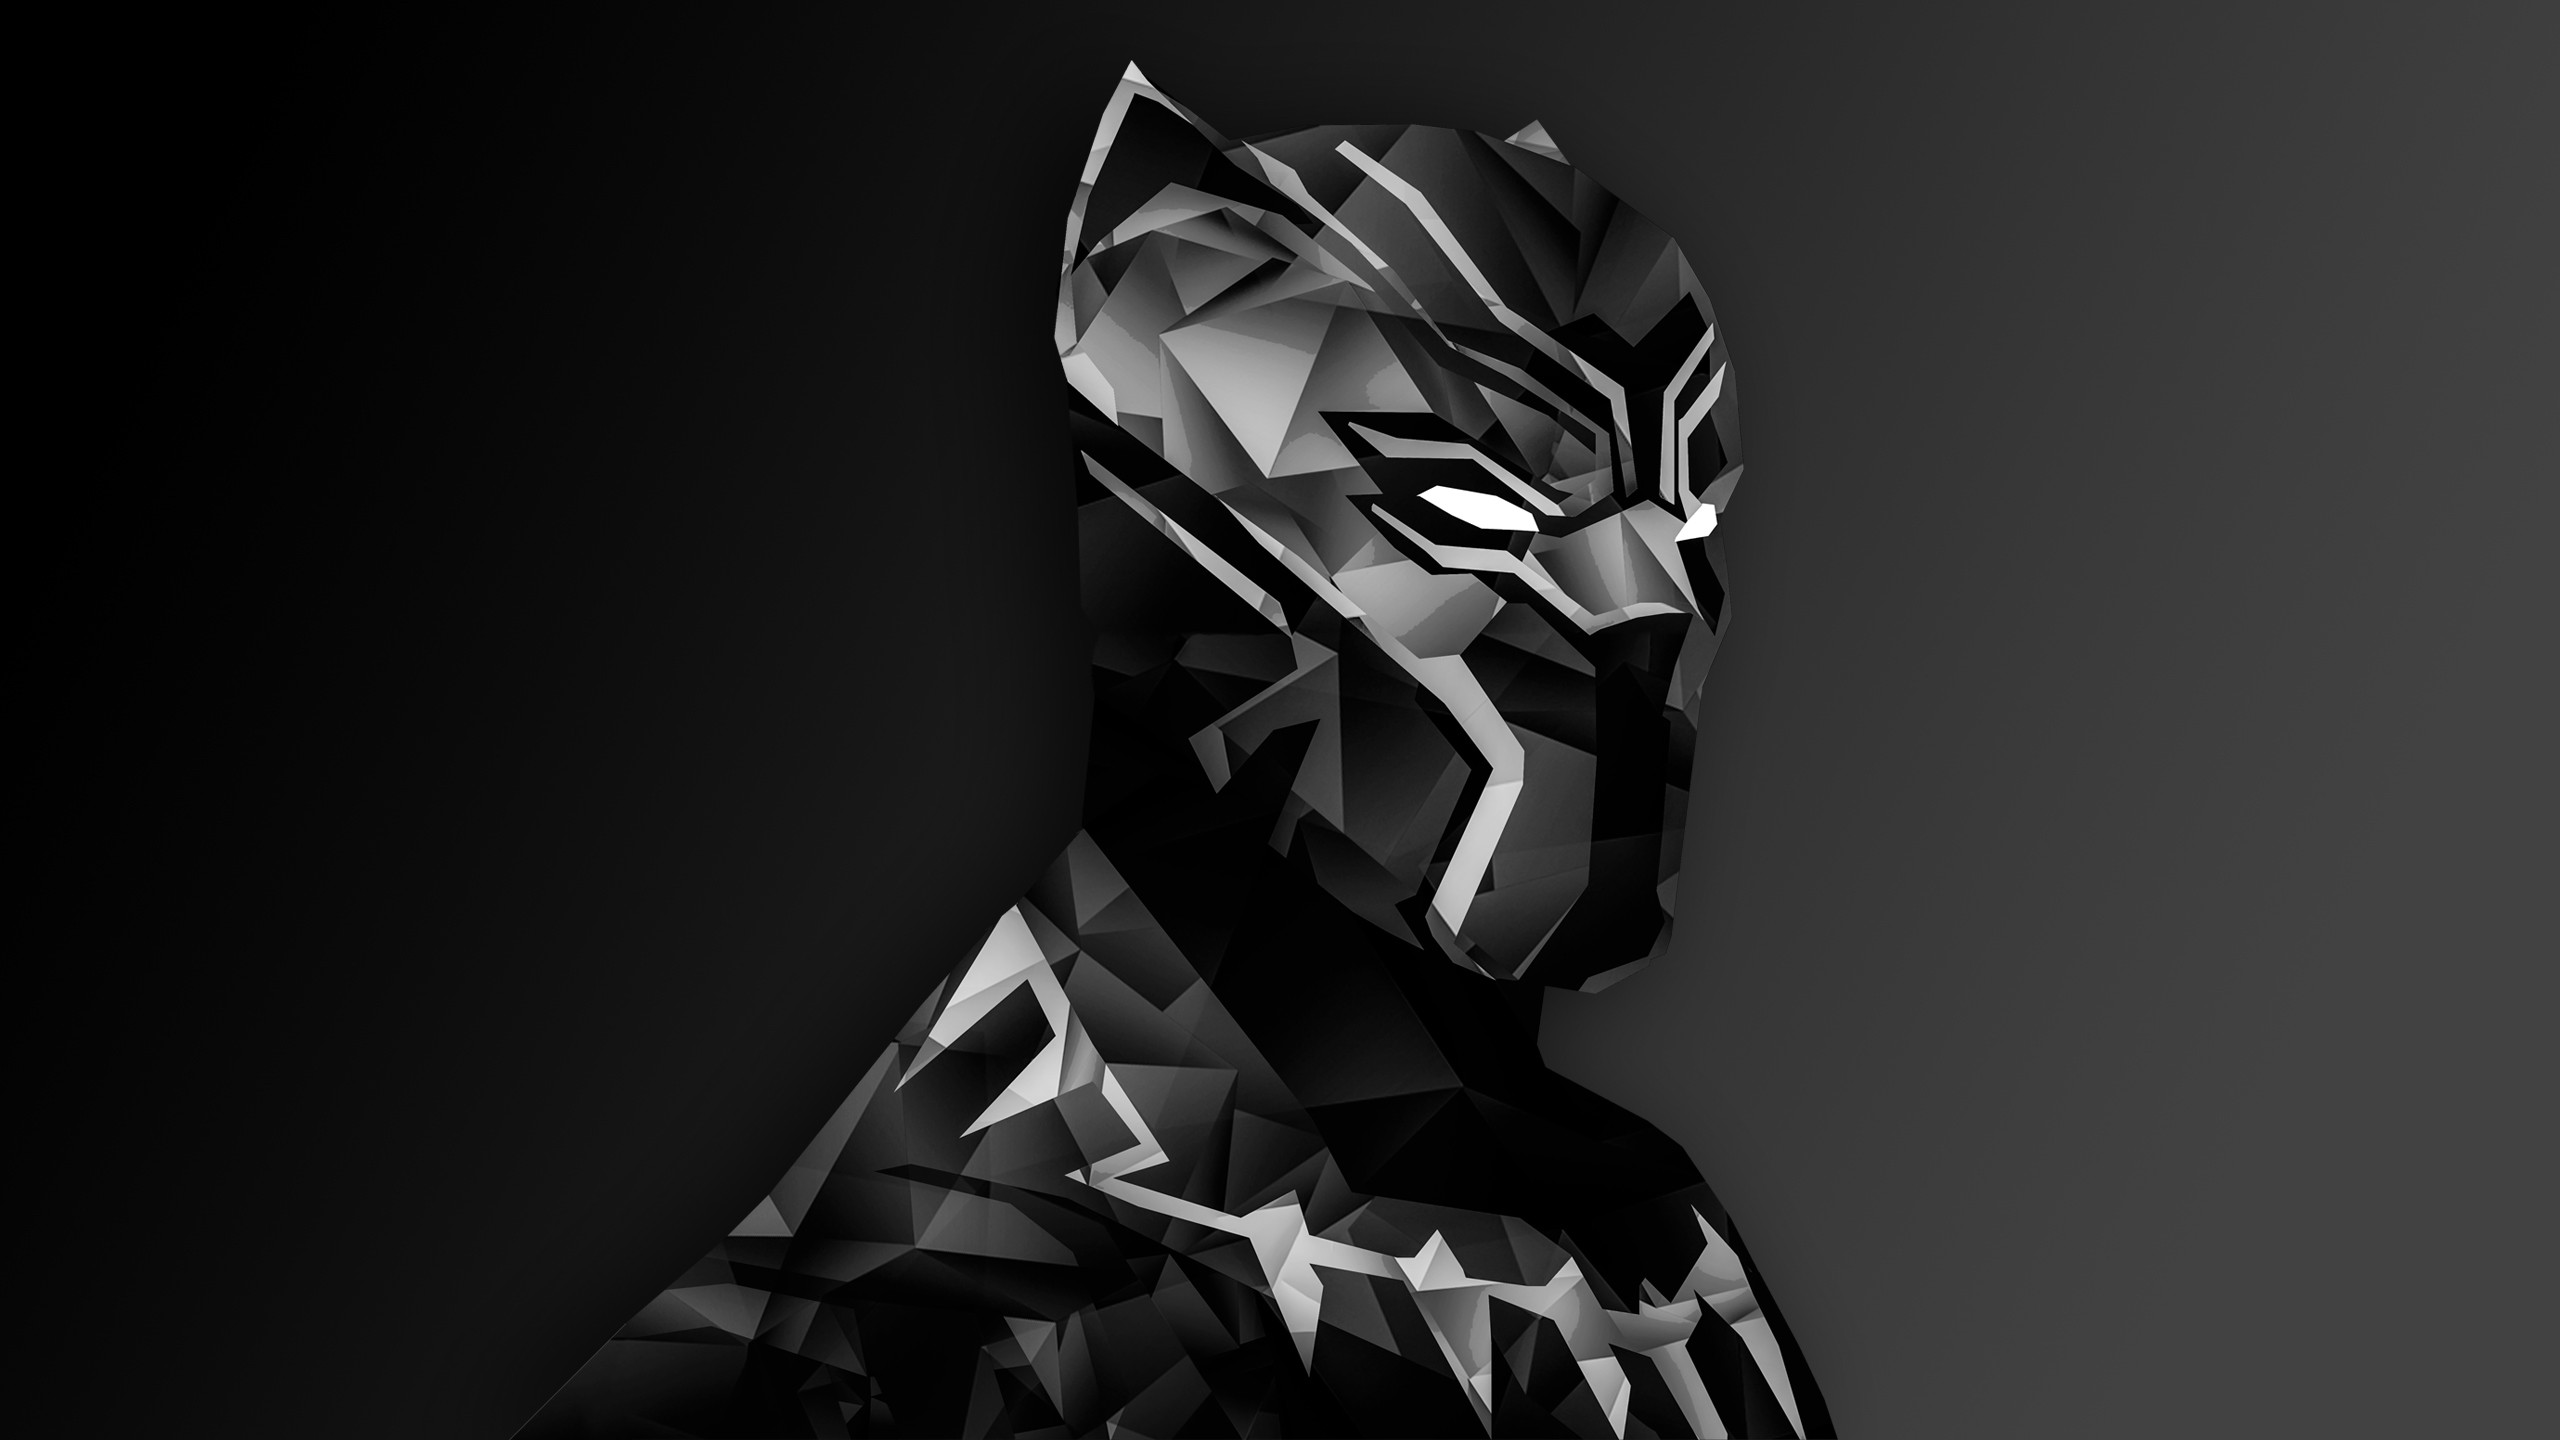 Black <b>Panther Wallpaper by</b> buh1 on DeviantArt